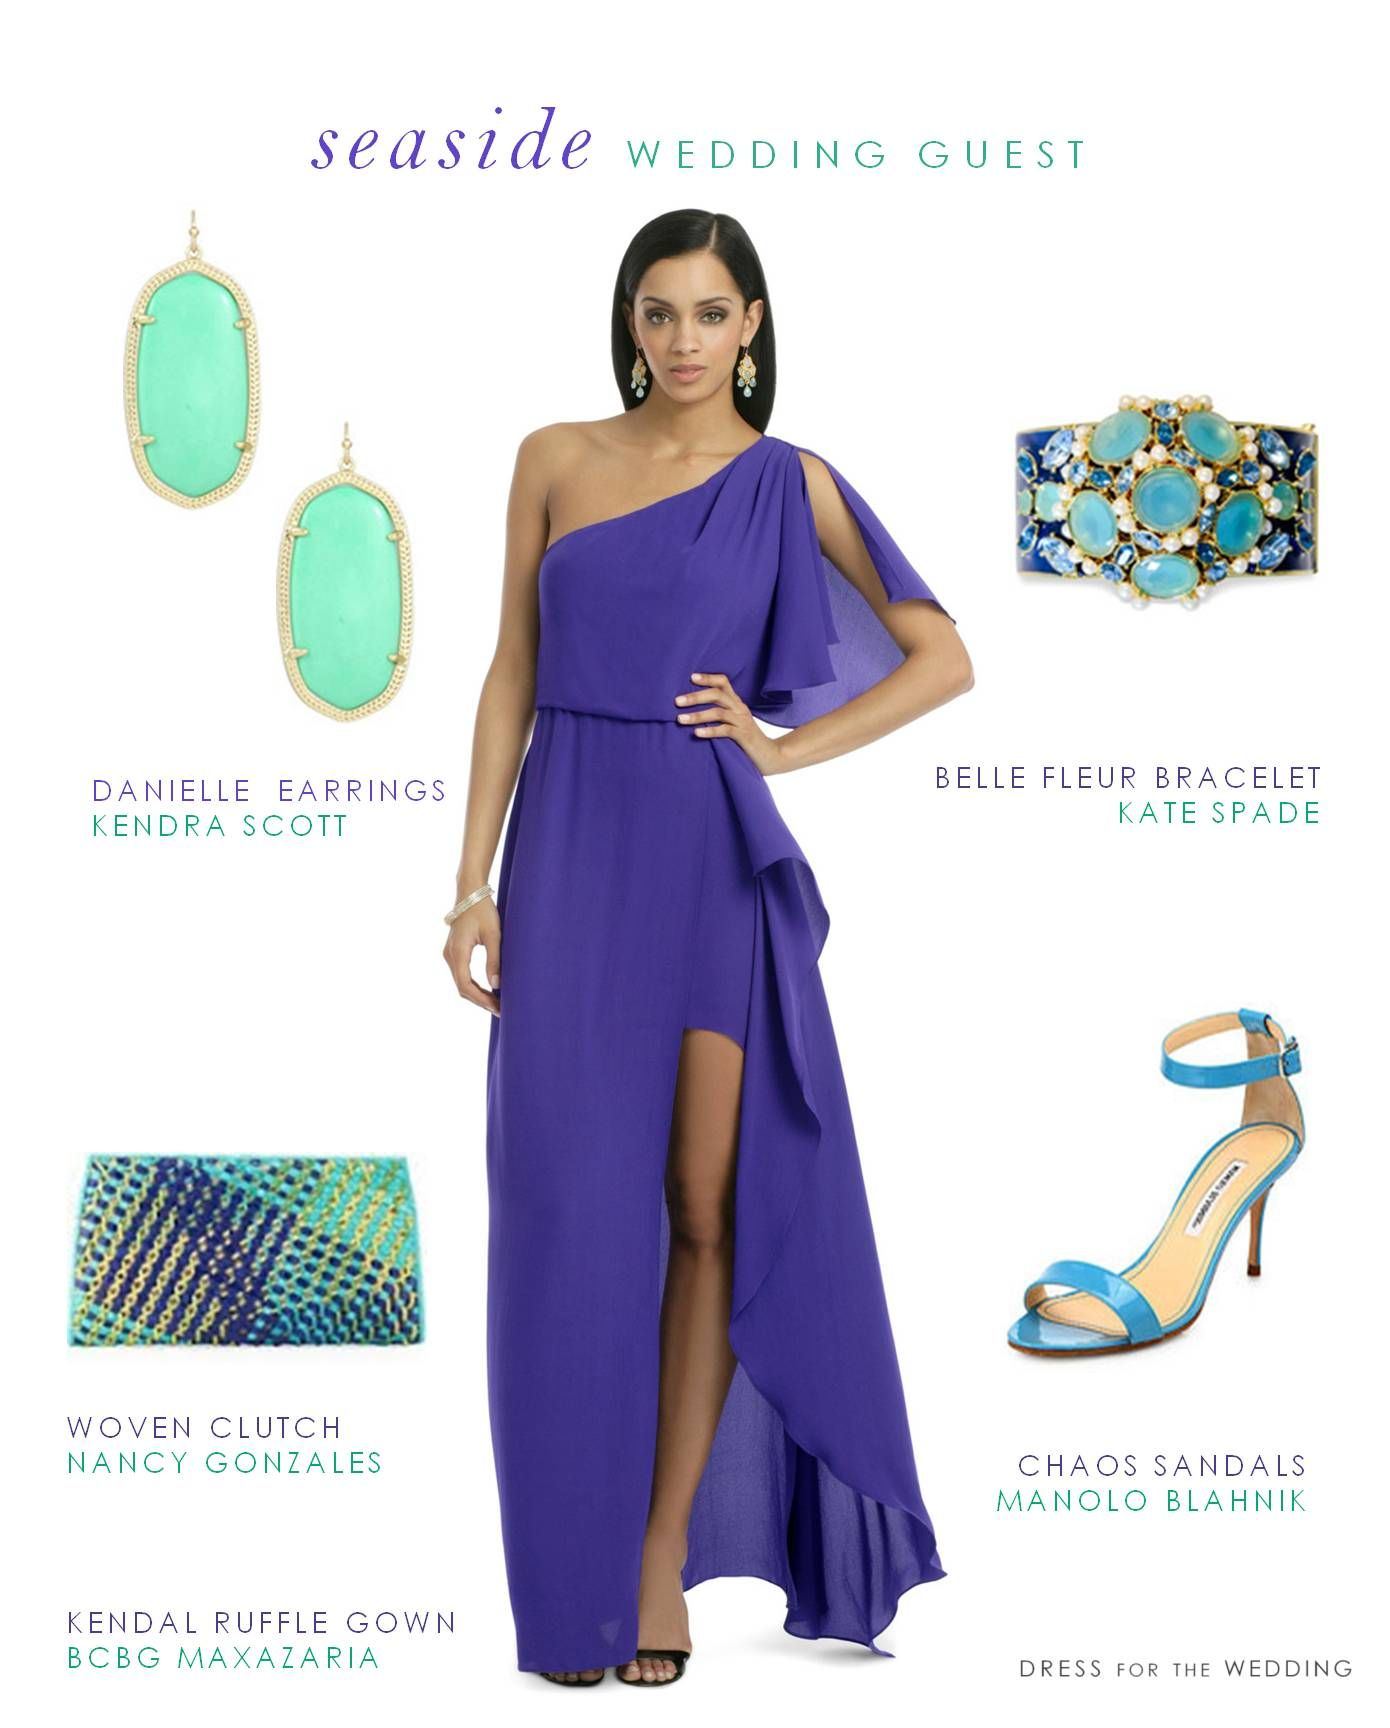 Wedding Guest Outfits For 2015 Wedding Attire Guest Beach Wedding Guest Attire Destination Wedding Attire [ 1728 x 1390 Pixel ]